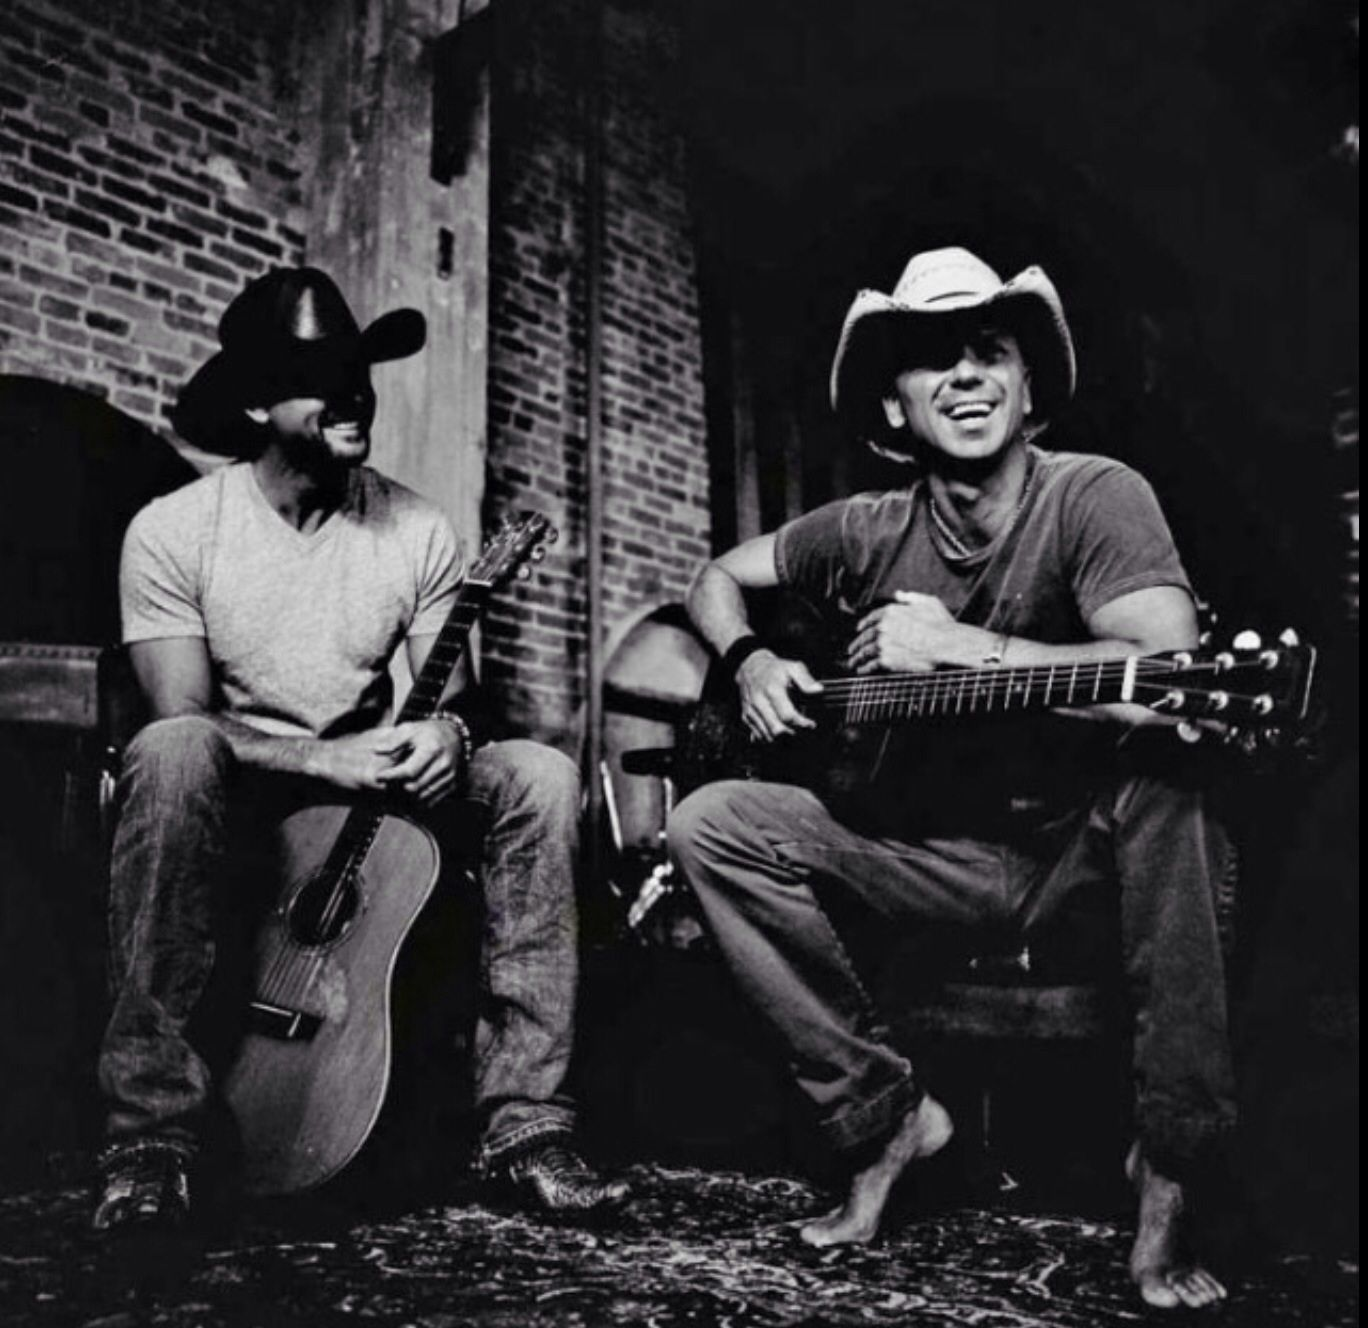 Jesus is the vocally and visually pleasing figures we see in our world. How much more  vocally and visually pleasing can one picture be with Tim McGraw and Kenny Chesney?